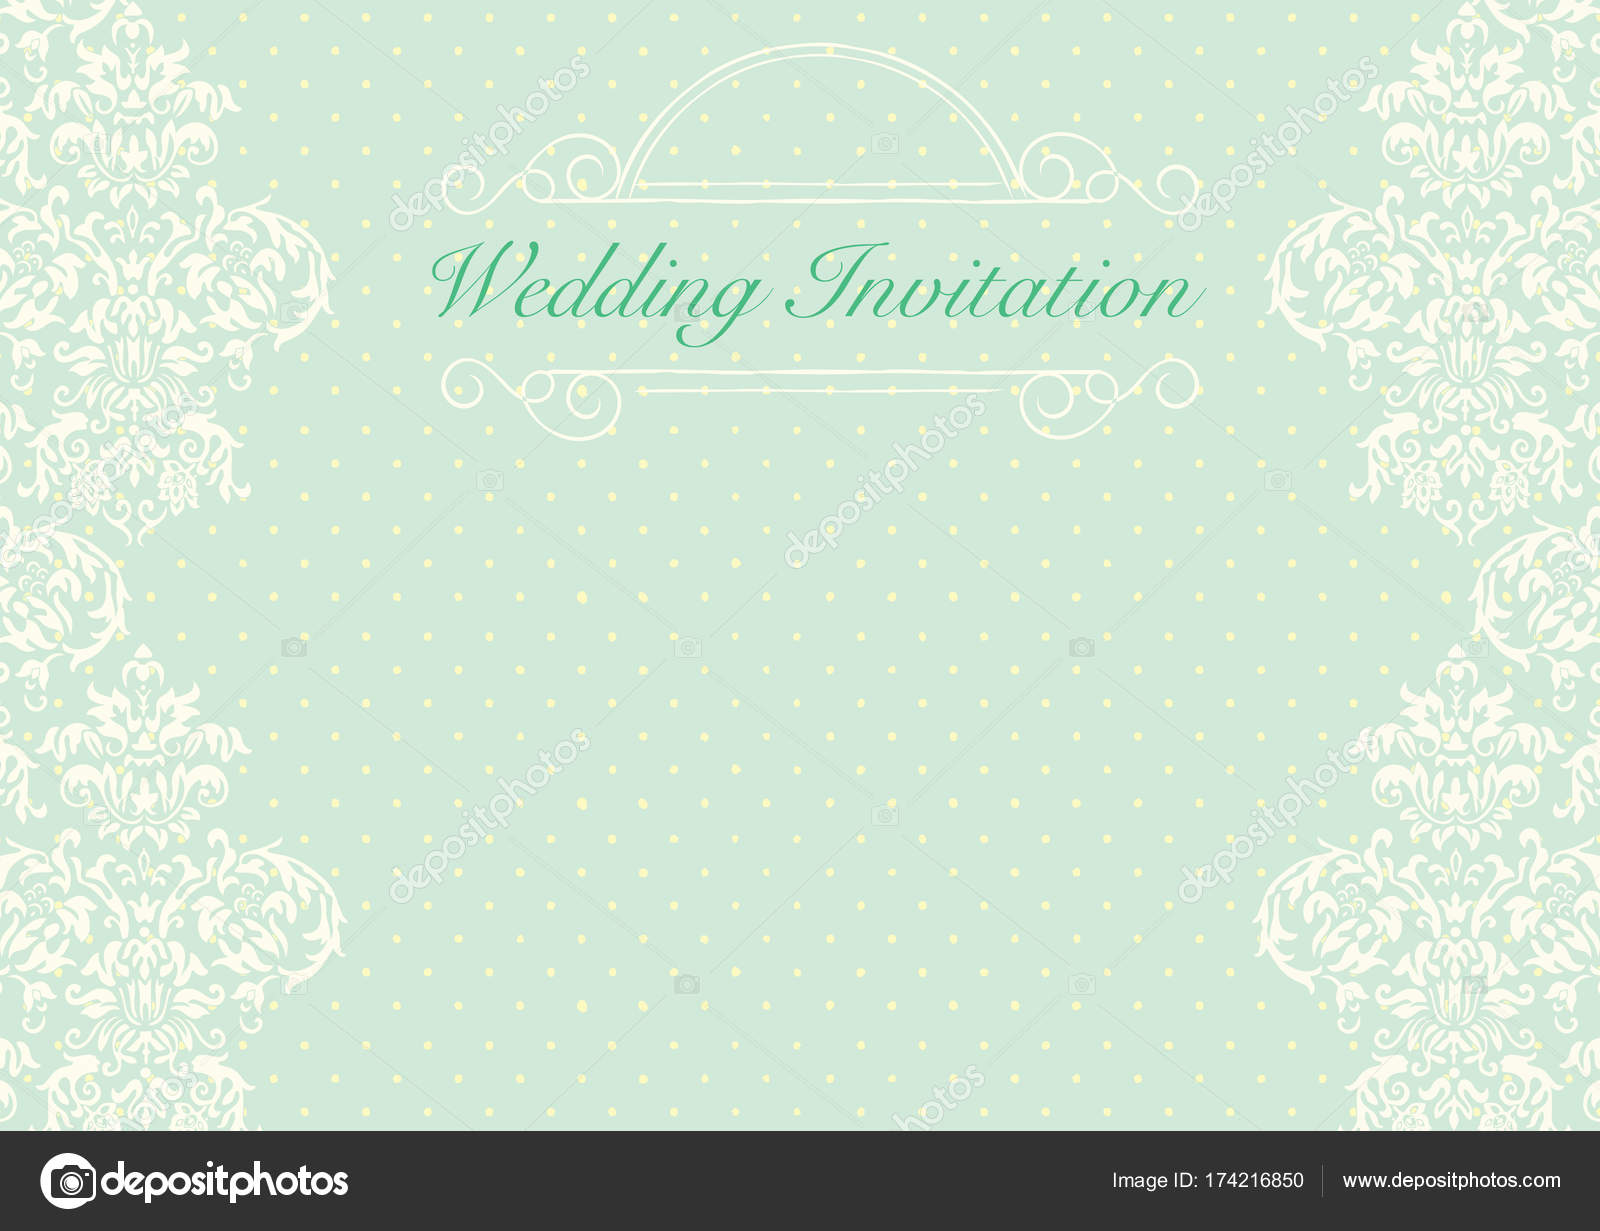 Green wedding invitation card background template with pattern green wedding invitation card background template with pattern stock vector stopboris